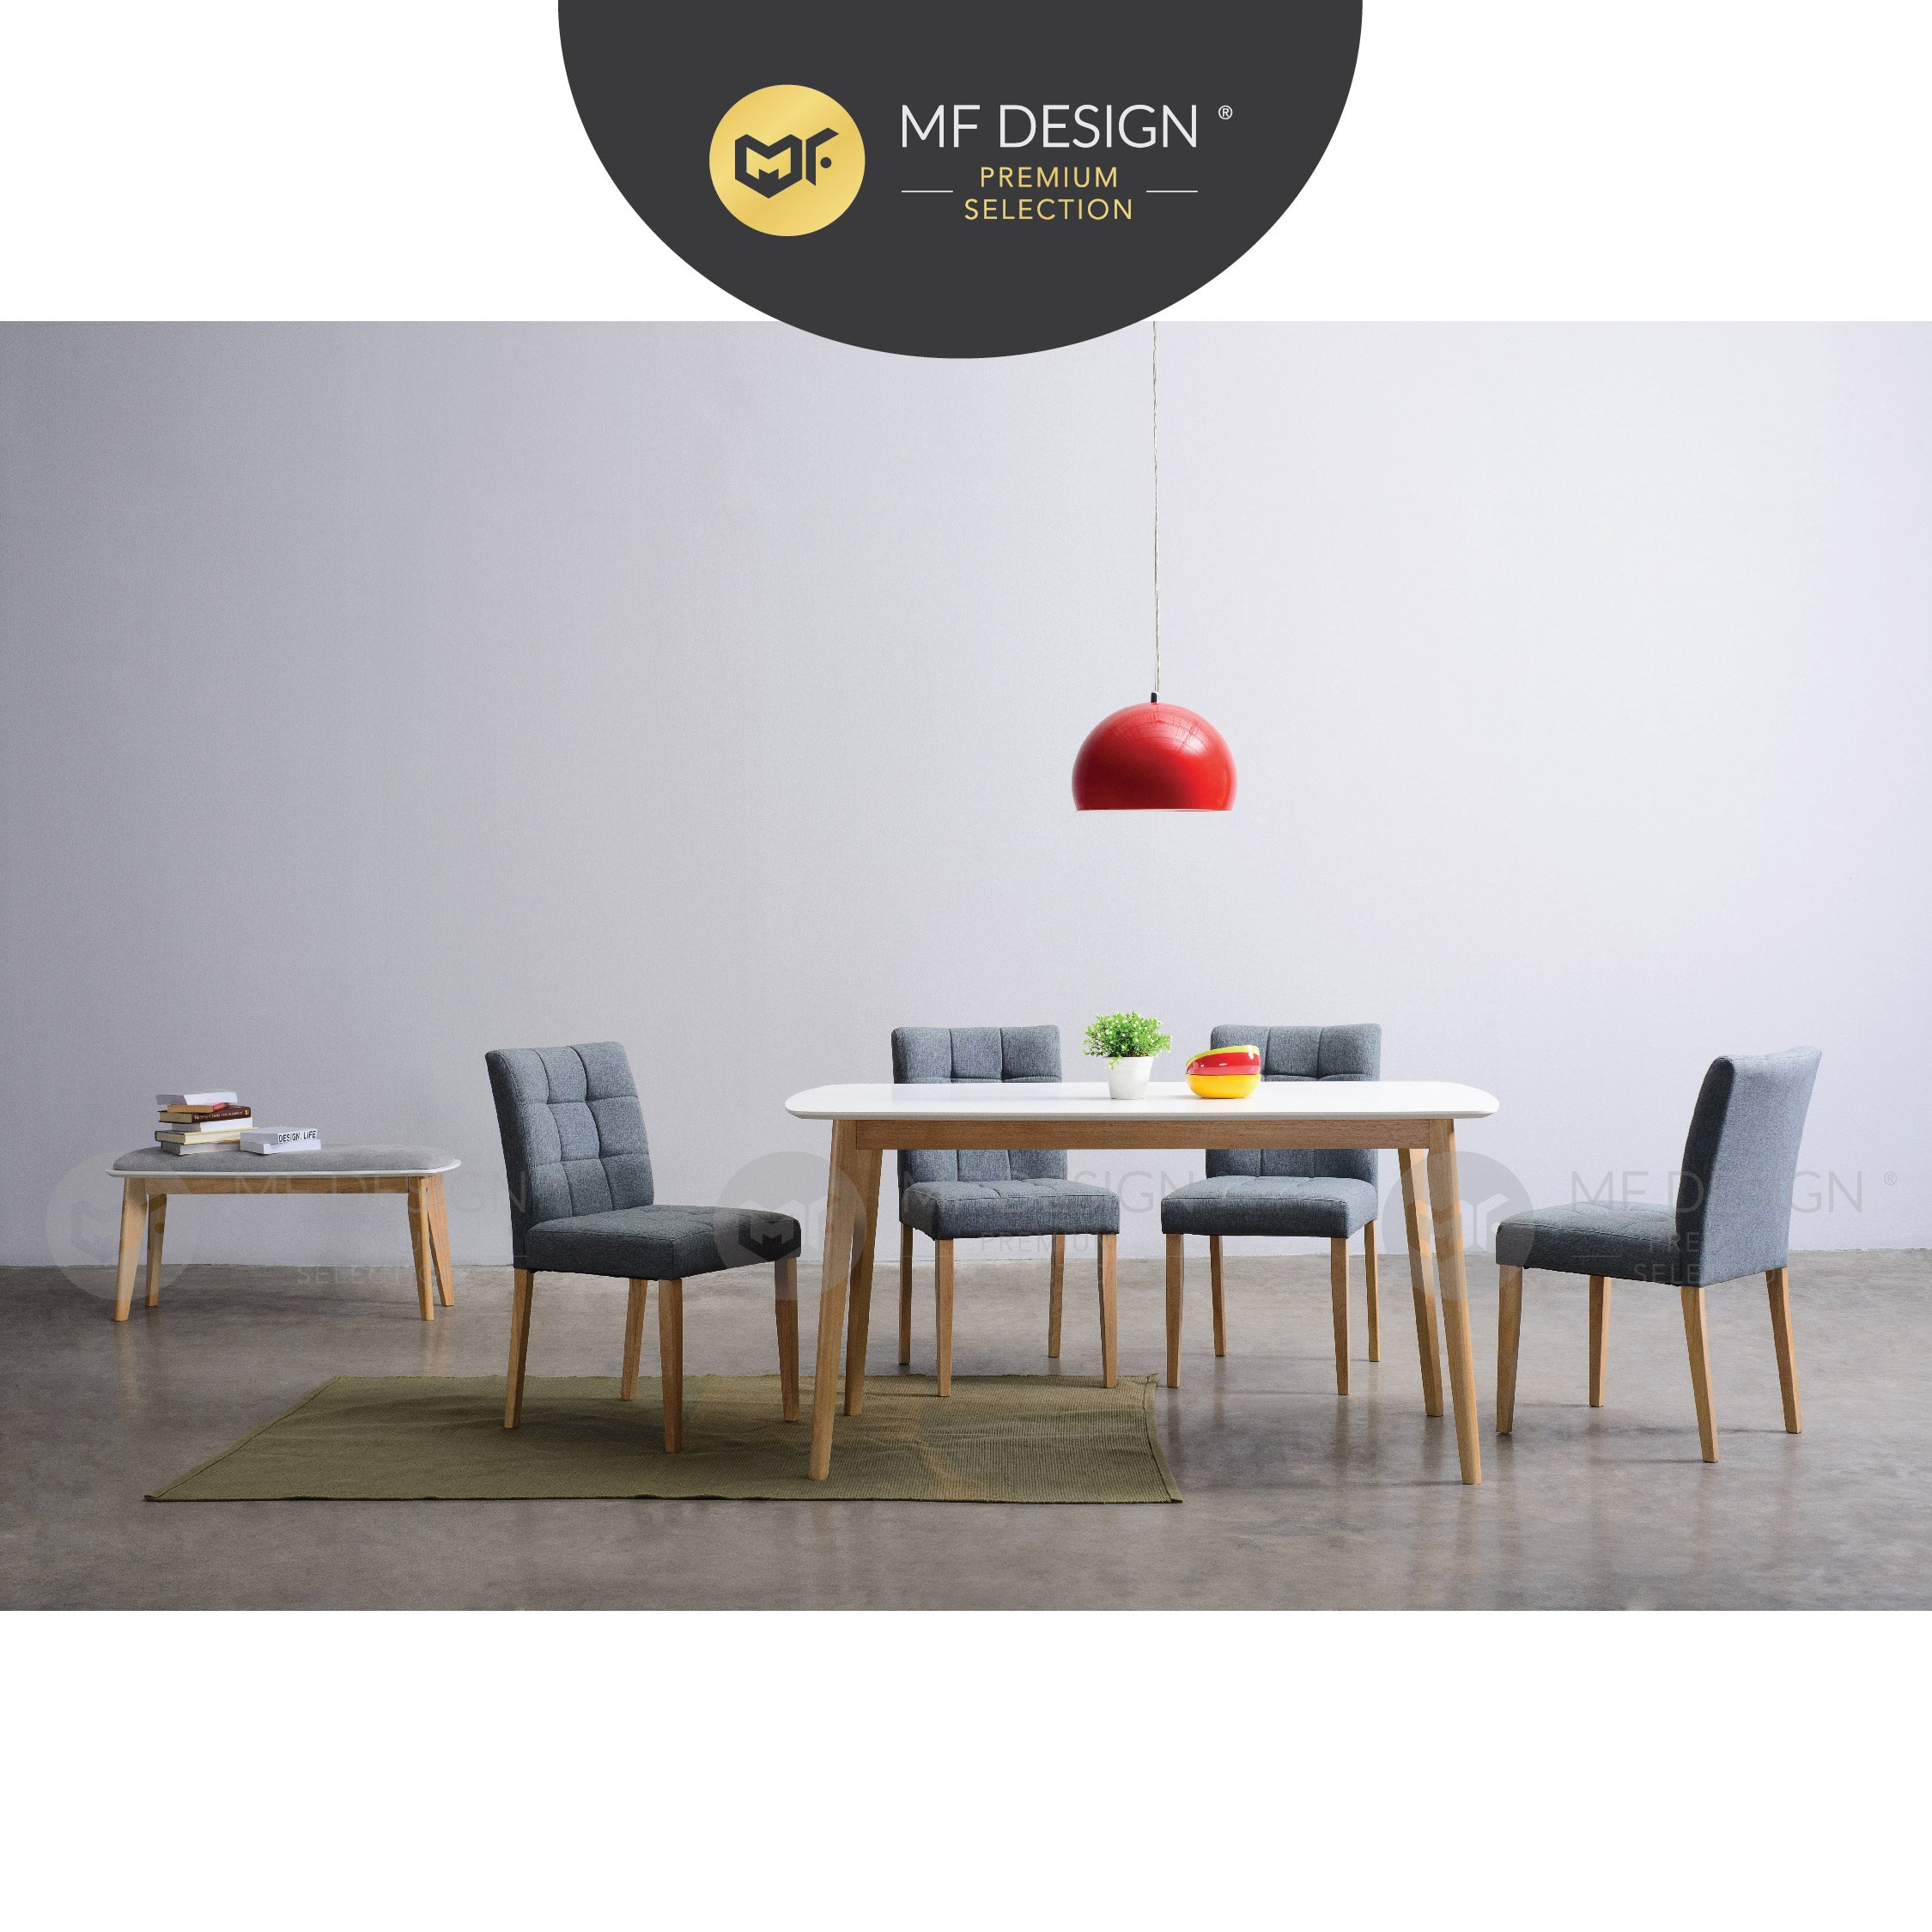 MFD Premium Daisy Dining Chair / Wooden Chair / Solid Rubber Wood / Kerusi Makan Kayu Getah / Living Room / Scandinavian